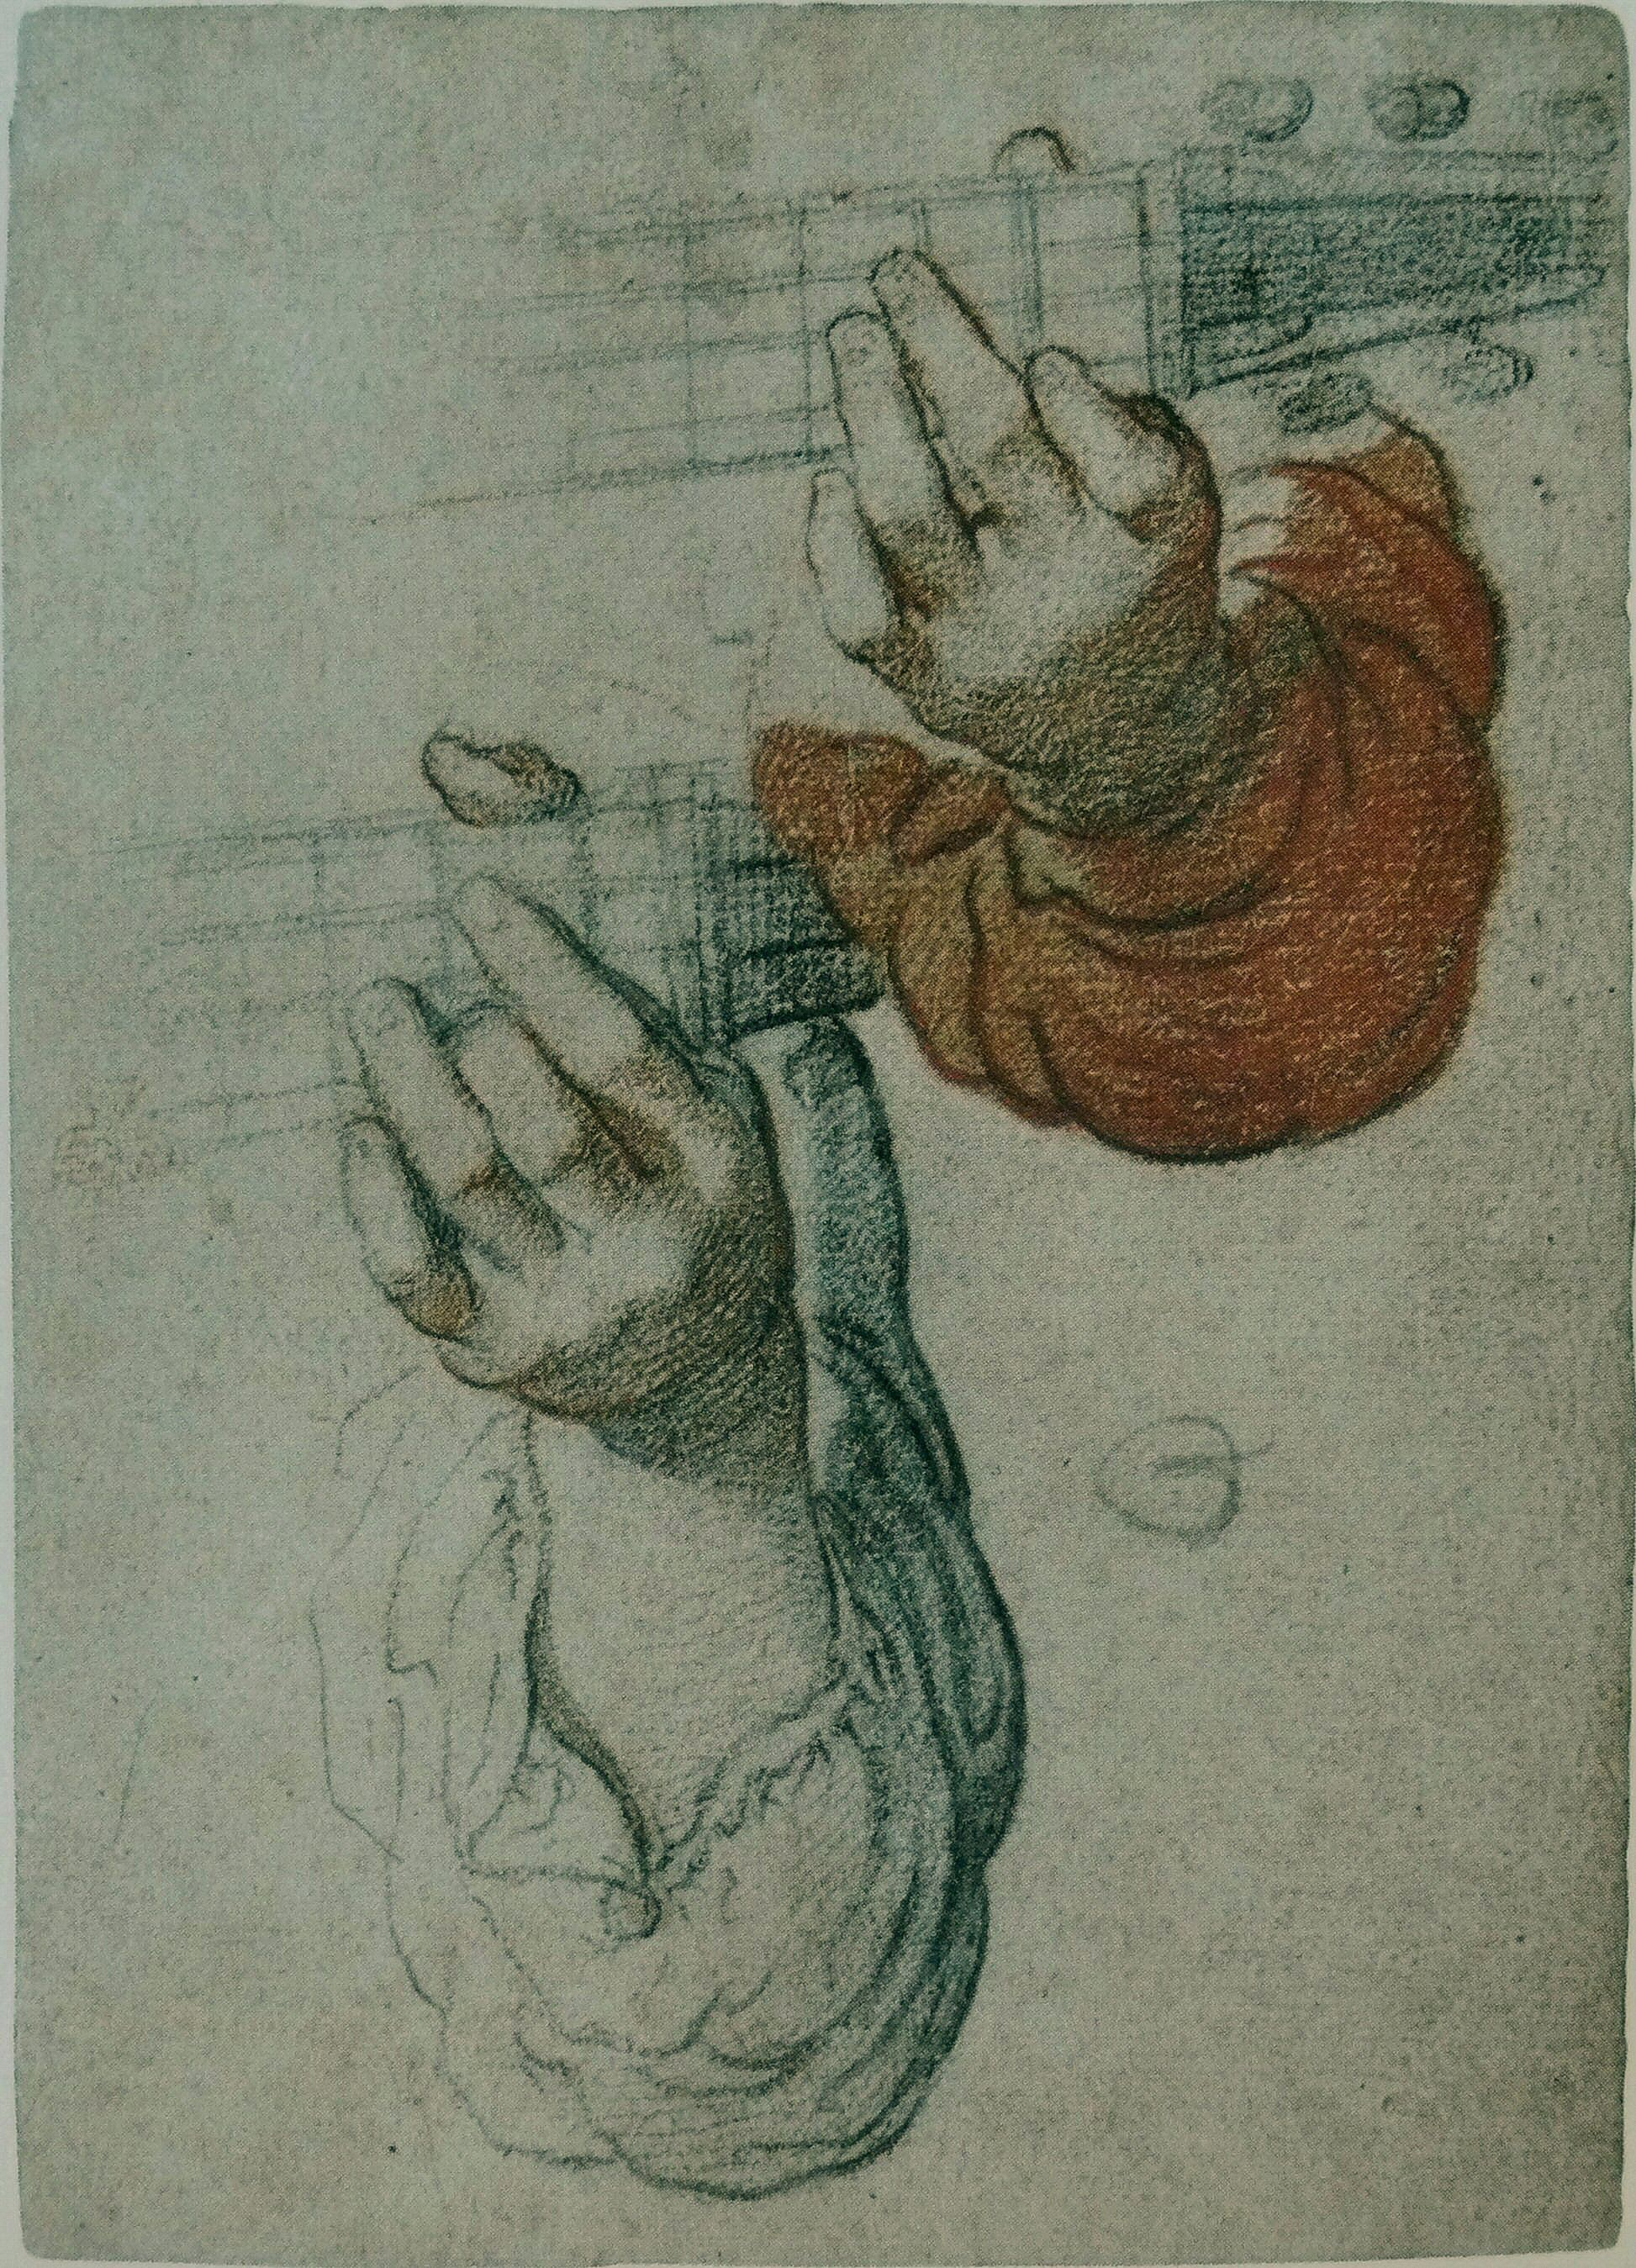 Attribuito a Francesco Vanni (1563–1610), Two studies of hands playing a Lute, anni '90 del XVI sec, Pierre noire et sanguine, 18.8 × 13.4 cm, Musée des Beaux-Arts, Marseille, France Drawing acquired by the French state in 2004 for the Musée des Beaux-Arts of Marseille.